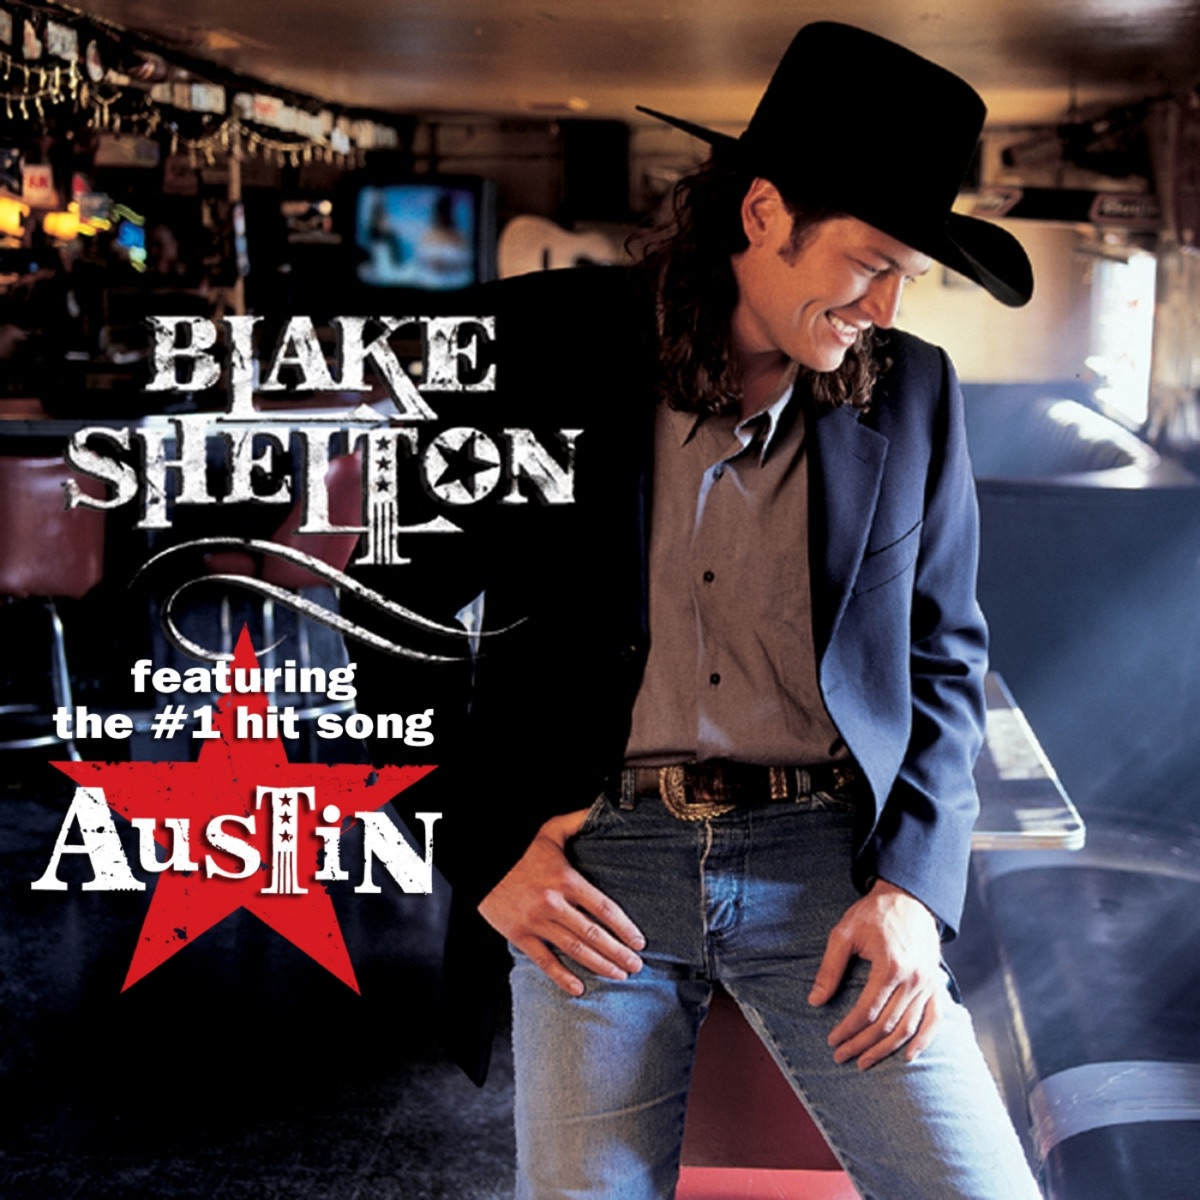 Blake Shelton Blake Shelton CD cover